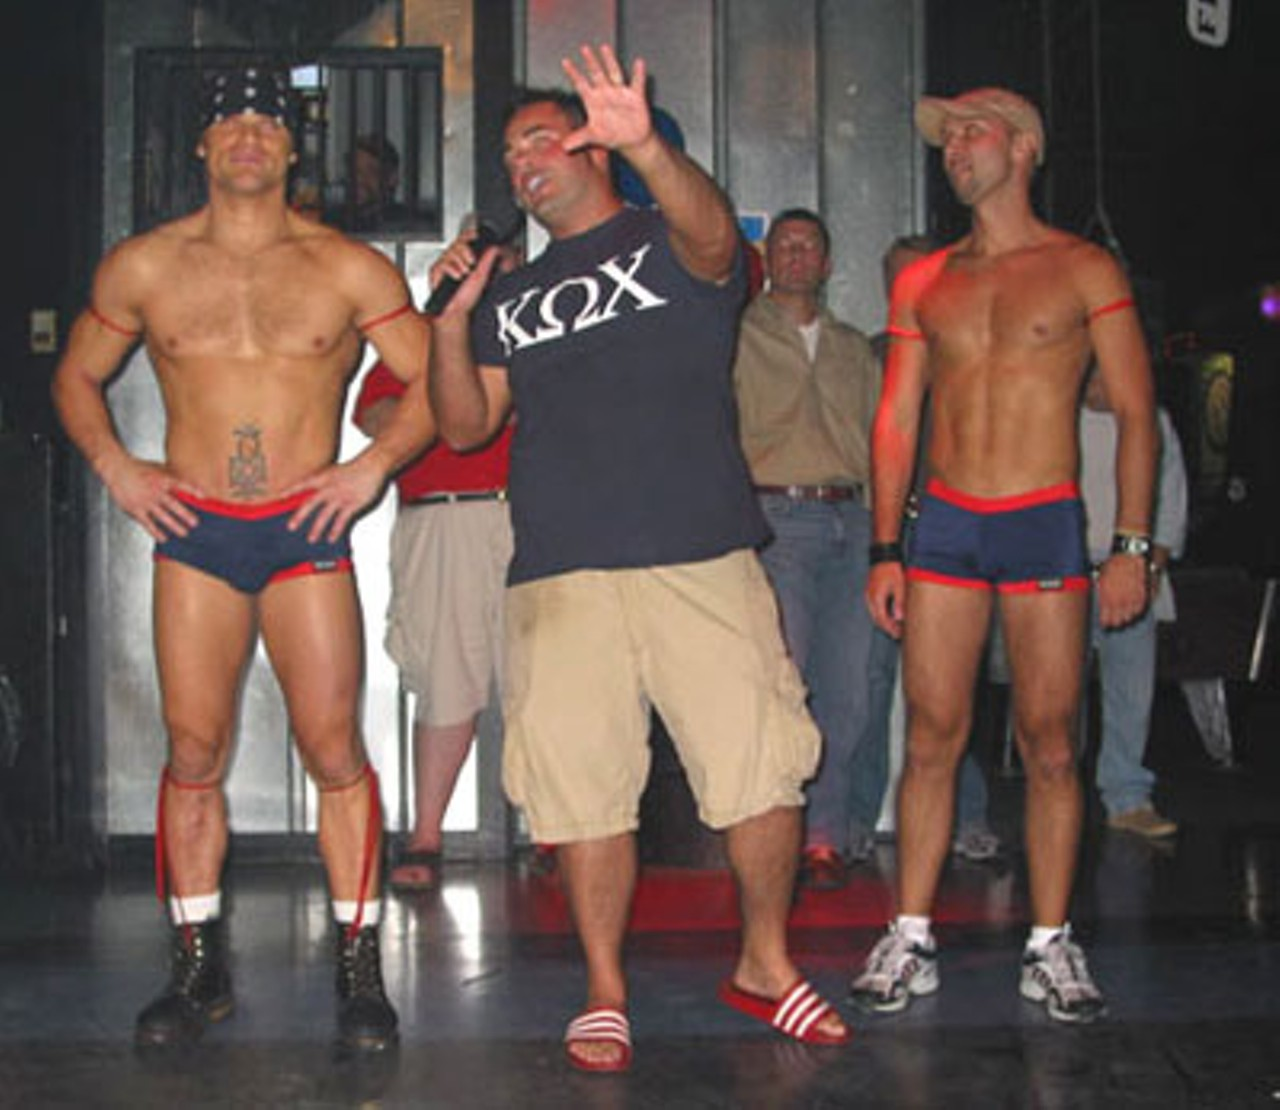 Gay fraternity hazing stories